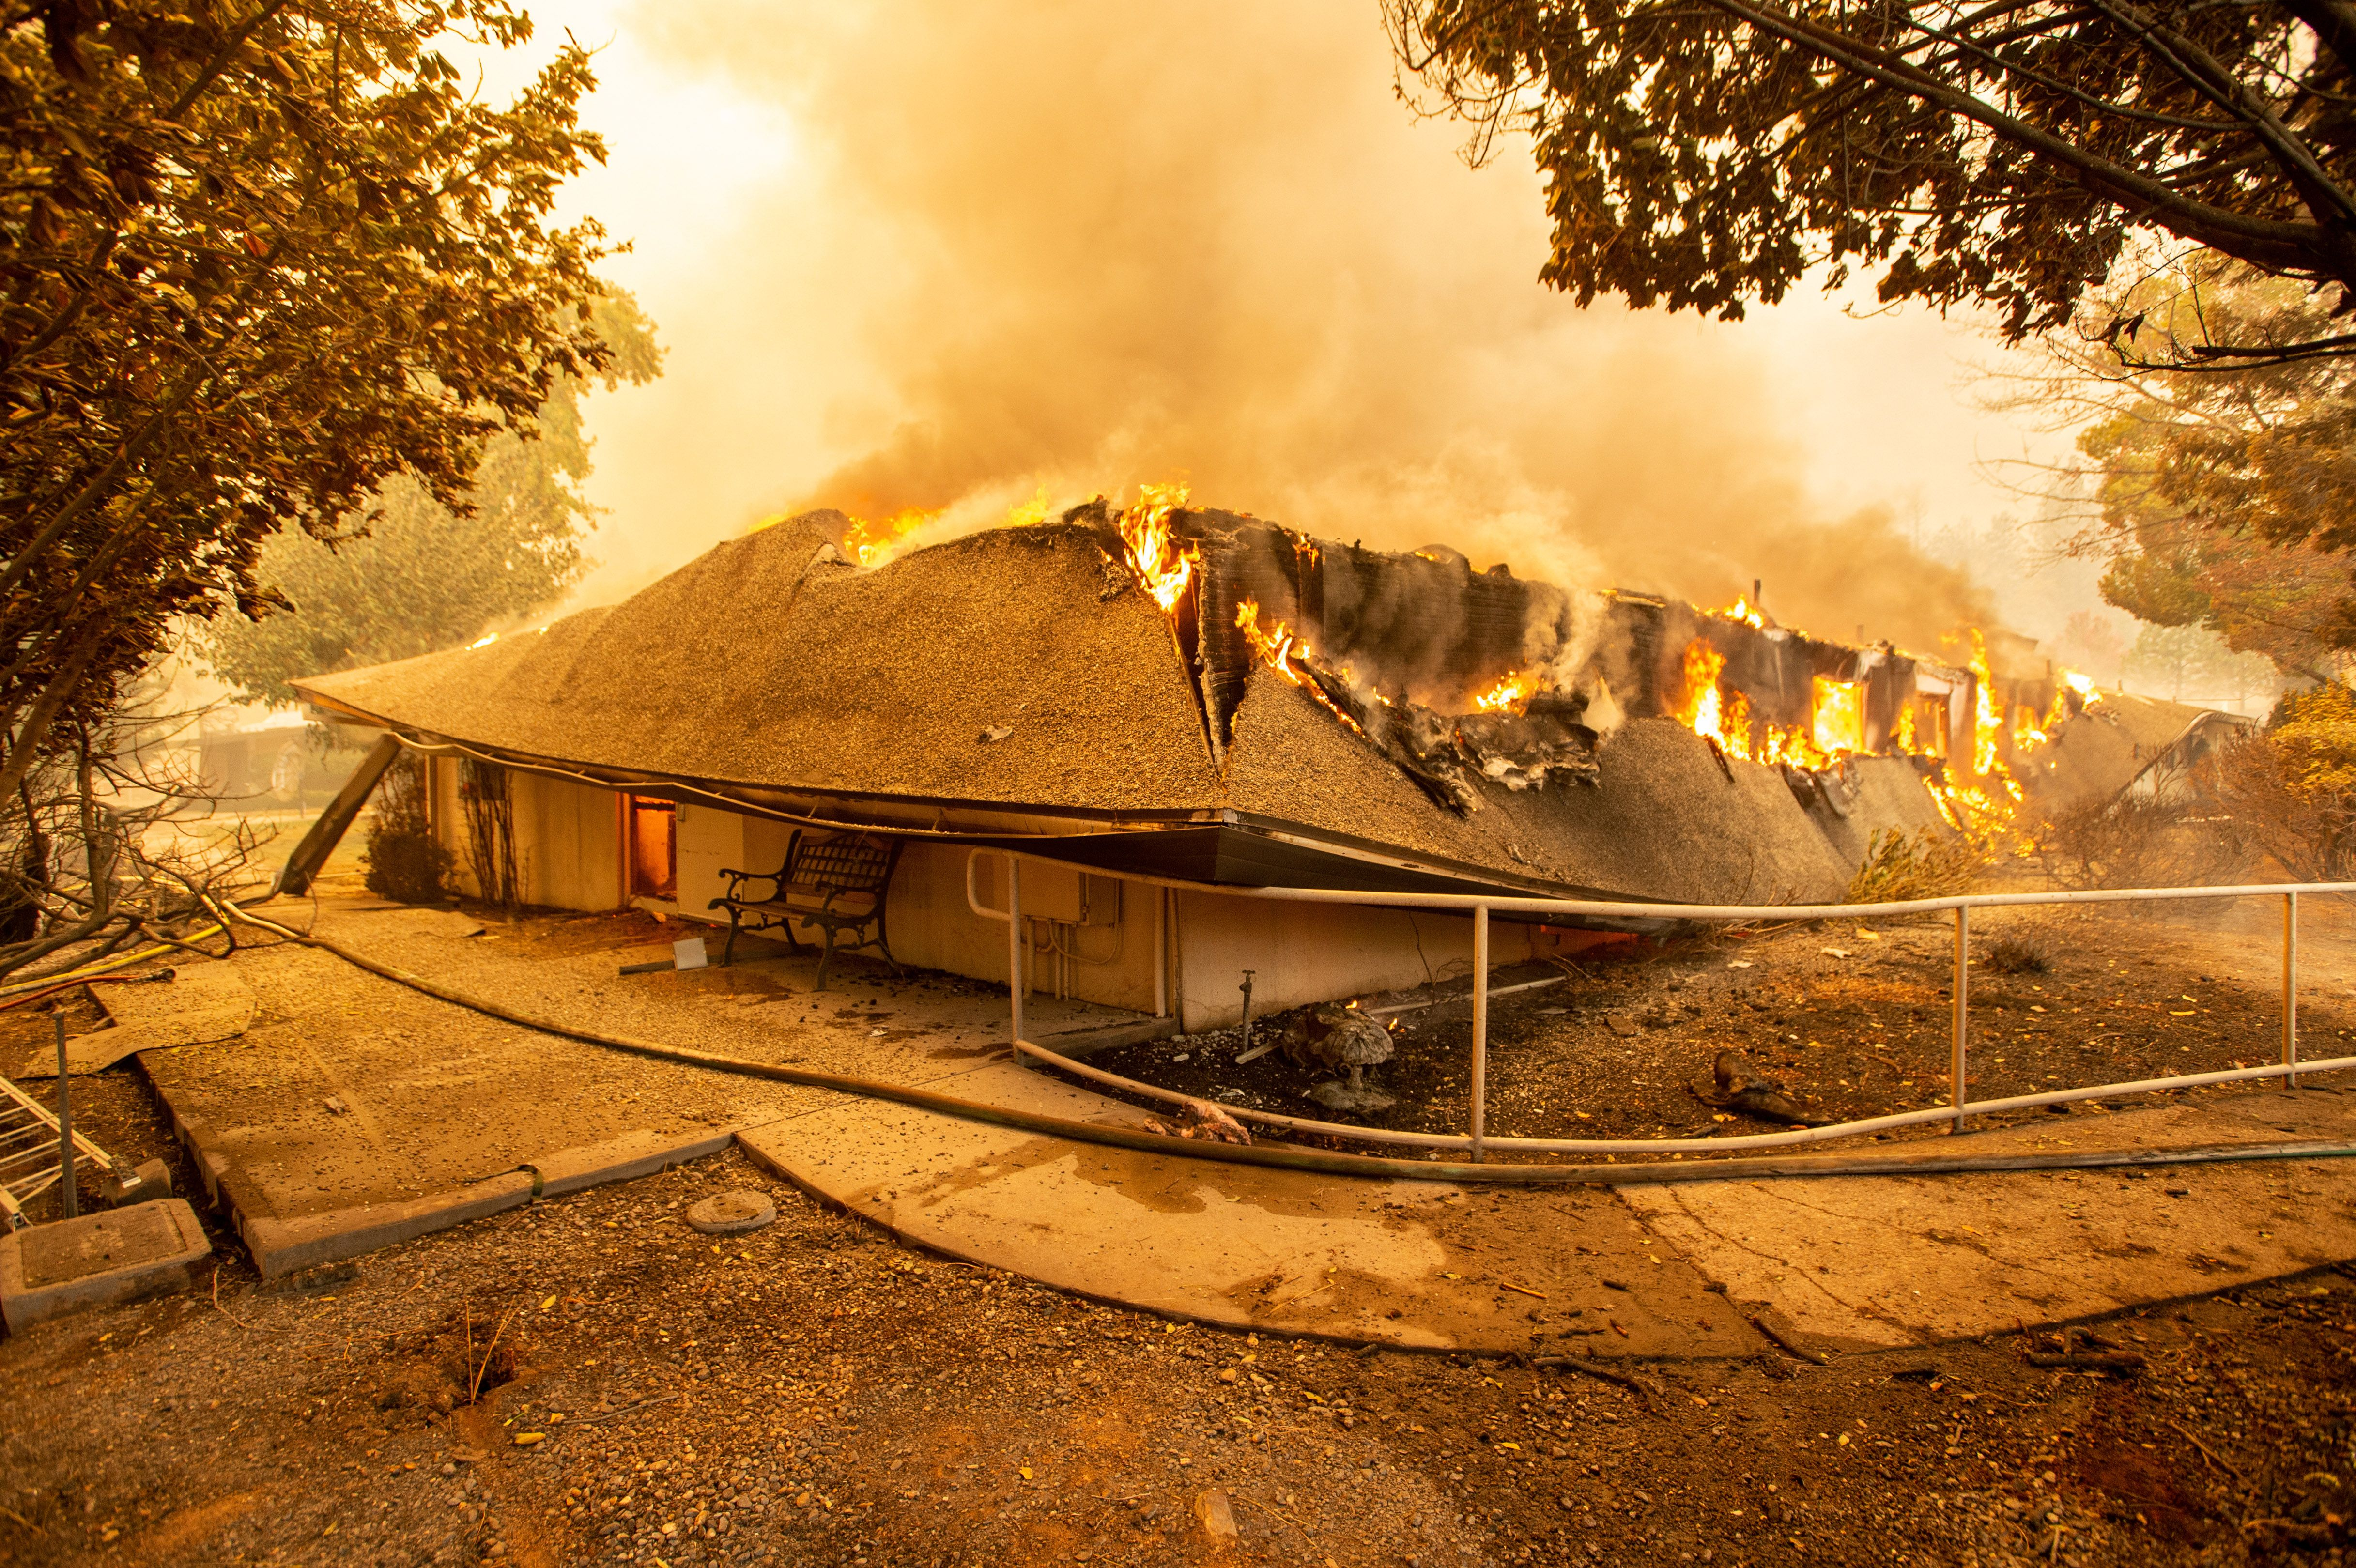 The Feather River Hospital burns down during the Camp fire in Paradise, California on November 8, 2018.